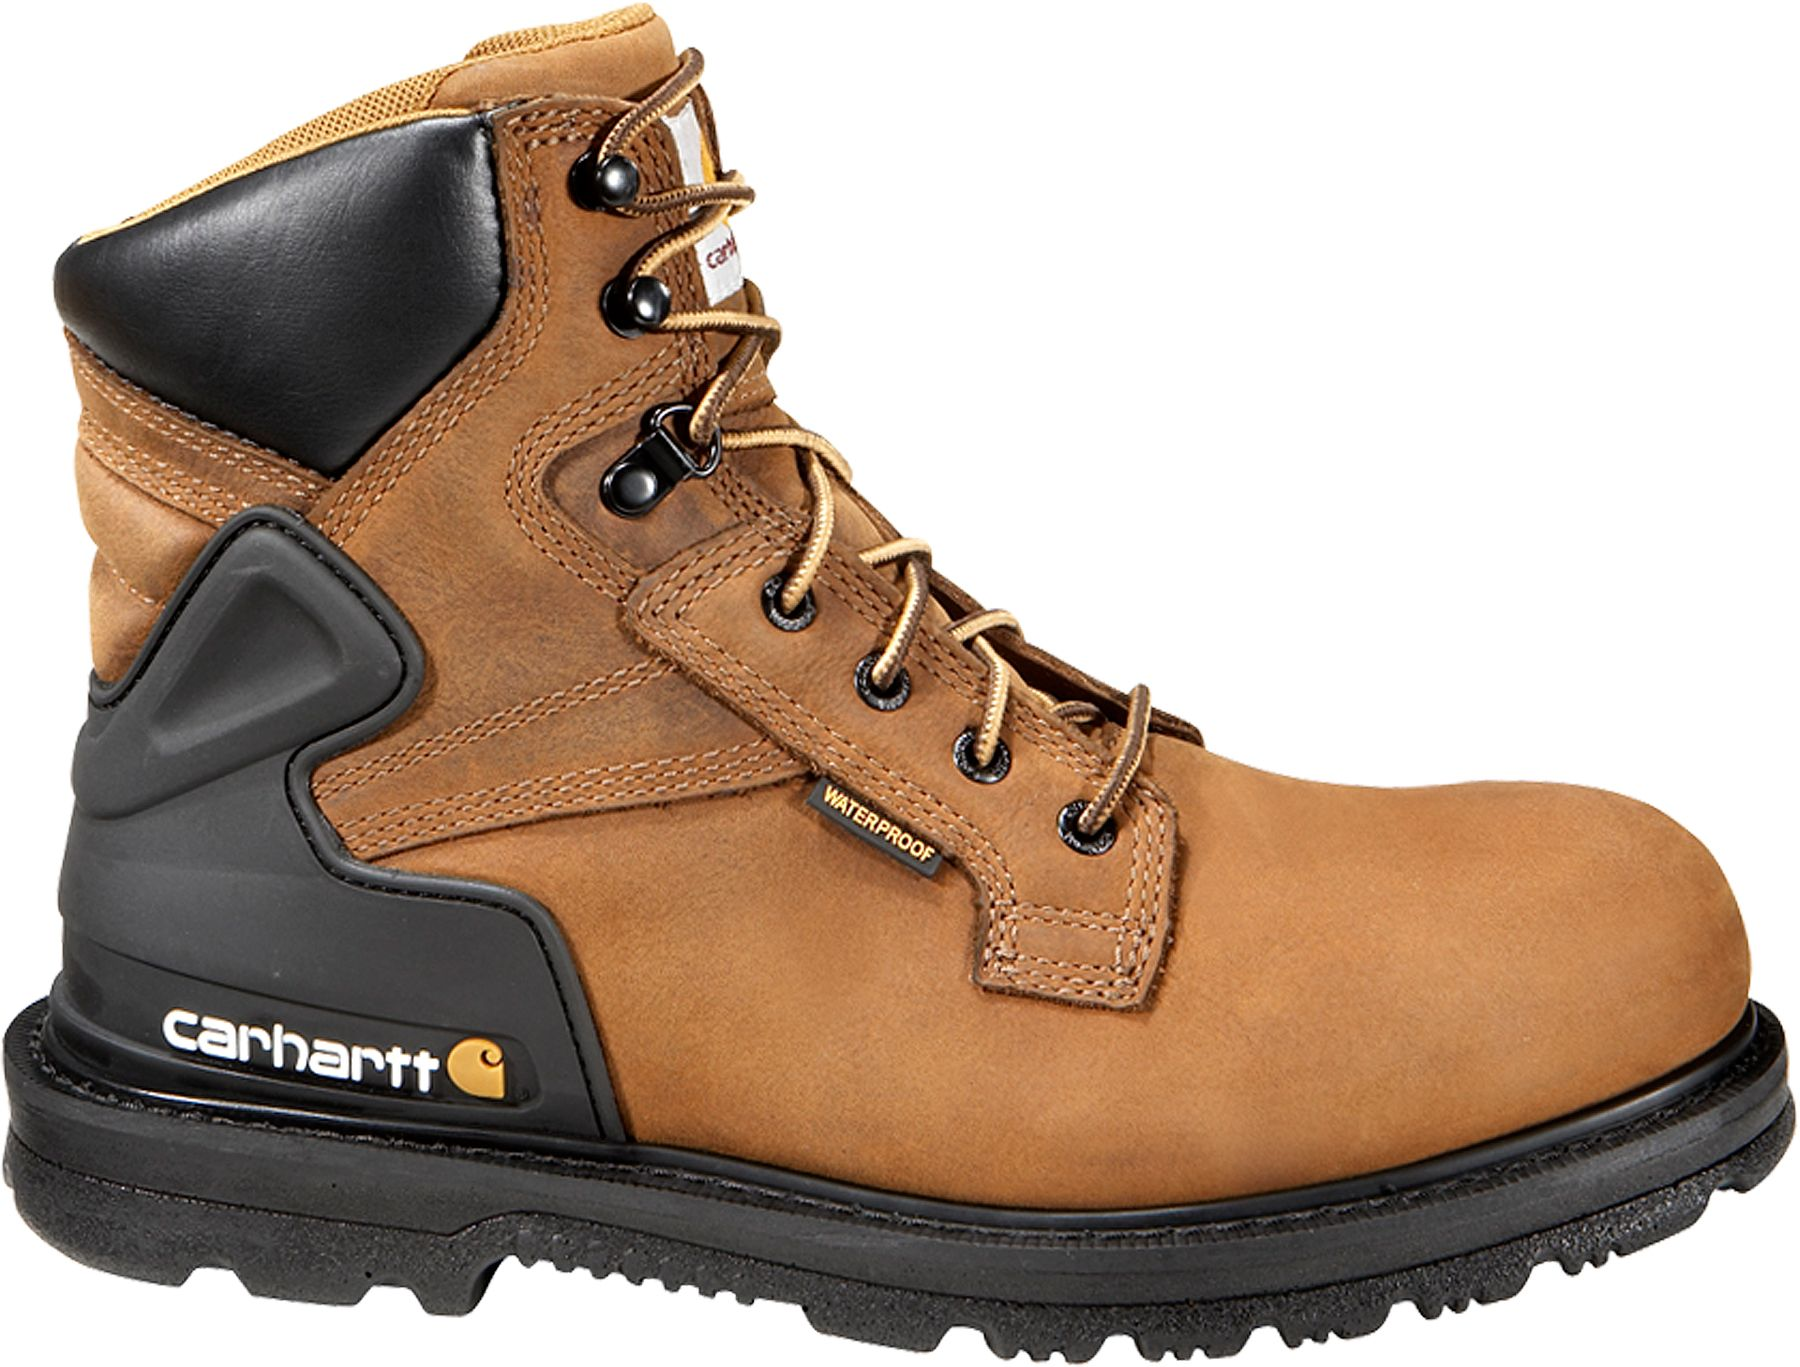 Carhartt Men's Bison 6'' Safety Toe Waterproof Work Boots| DICK'S ...